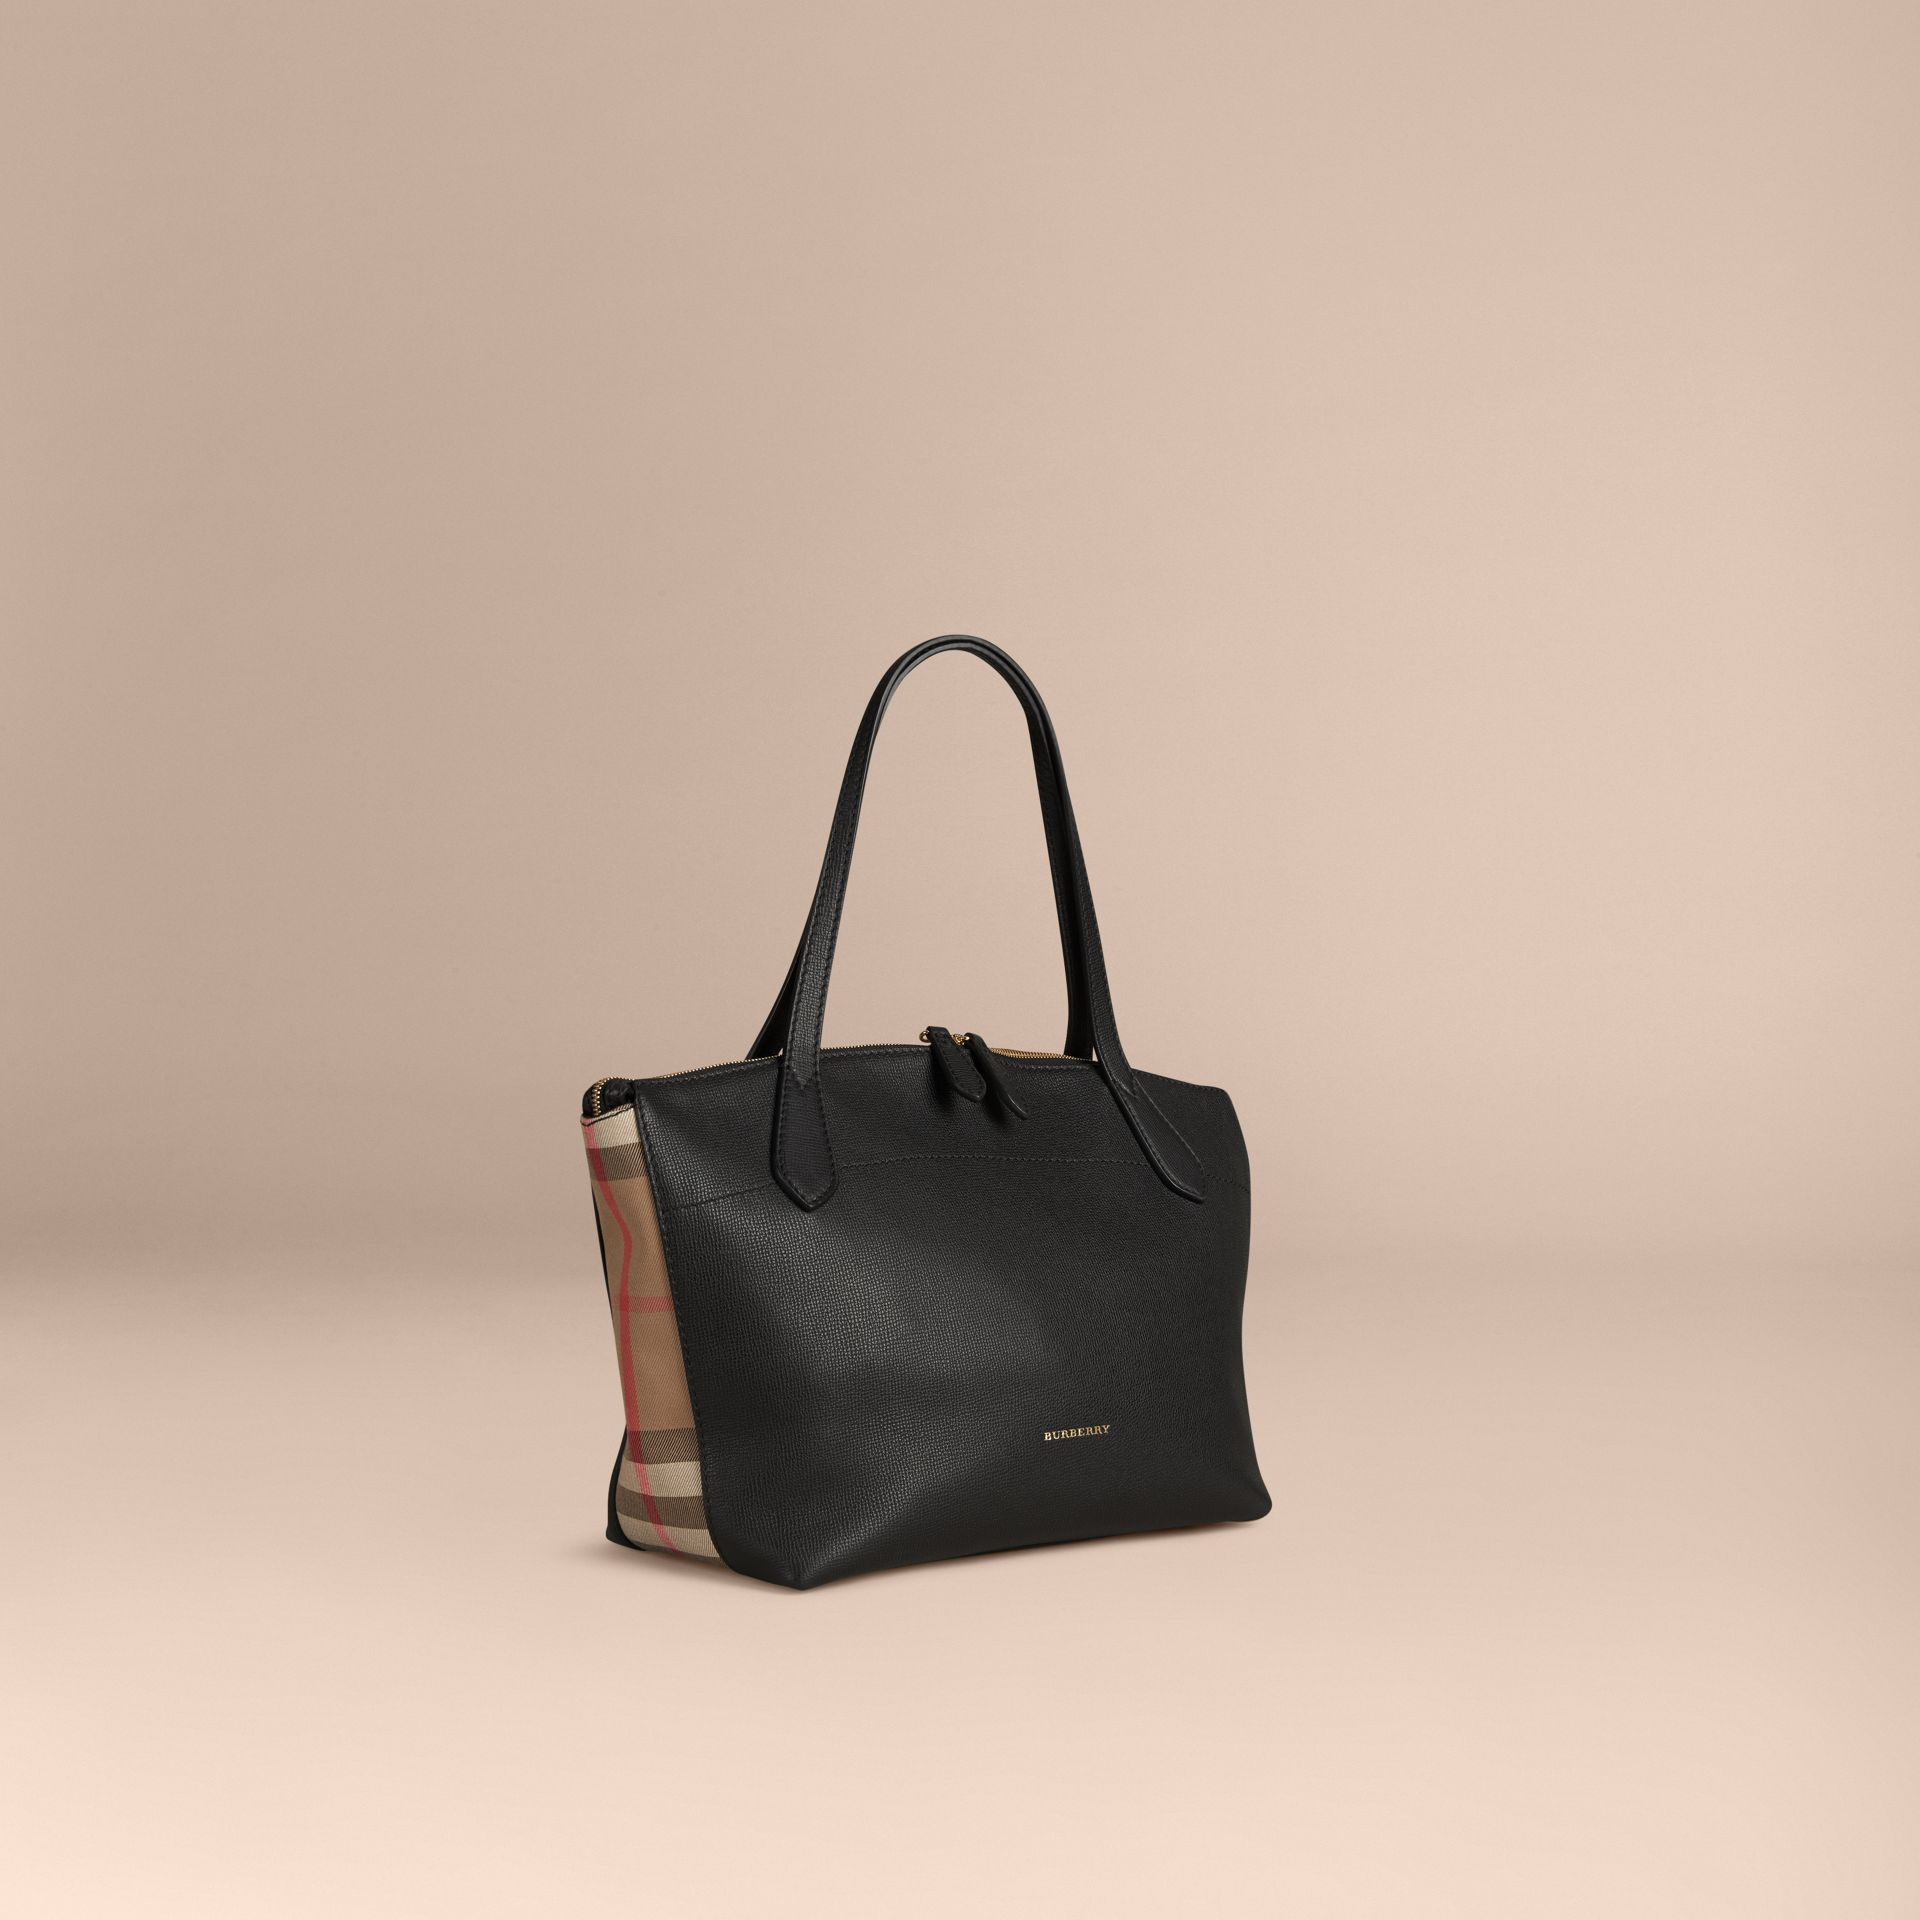 Black Medium Leather and House Check Tote Bag Black - gallery image 1